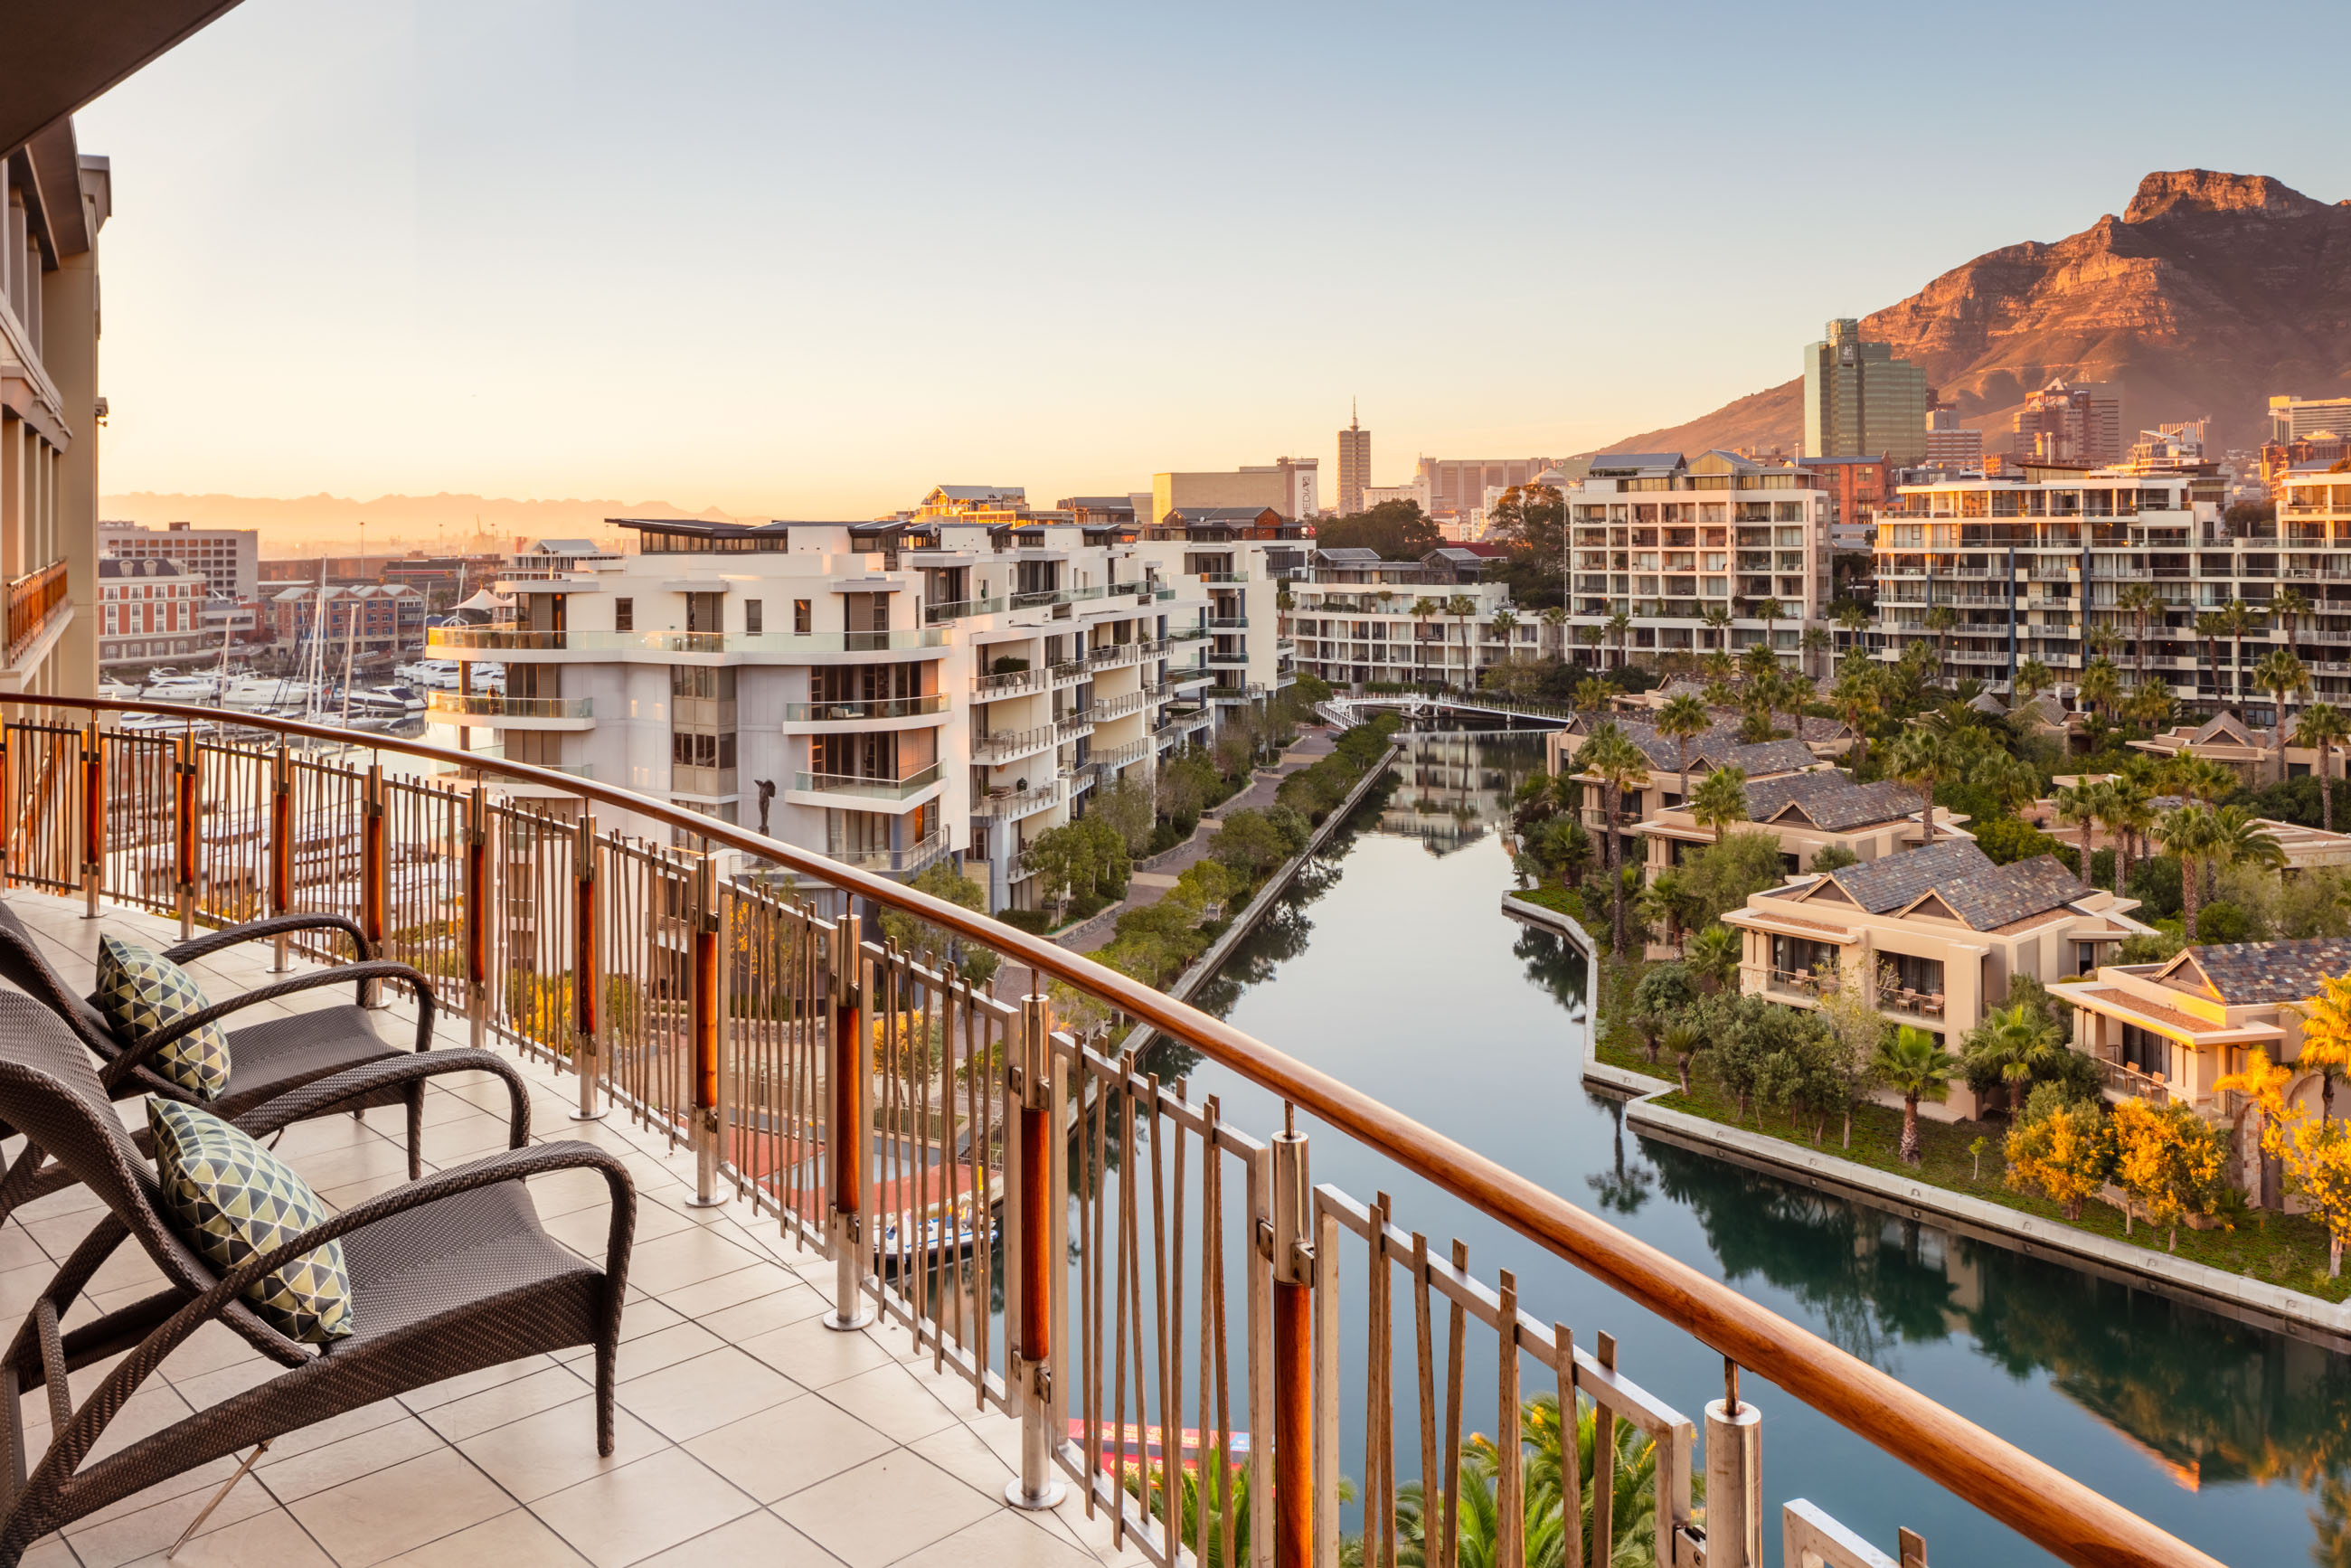 https://bubo.sk/uploads/galleries/7303/oo_capetown_exterior_suite_balcony_view_wide_2521-hdr_master.jpg